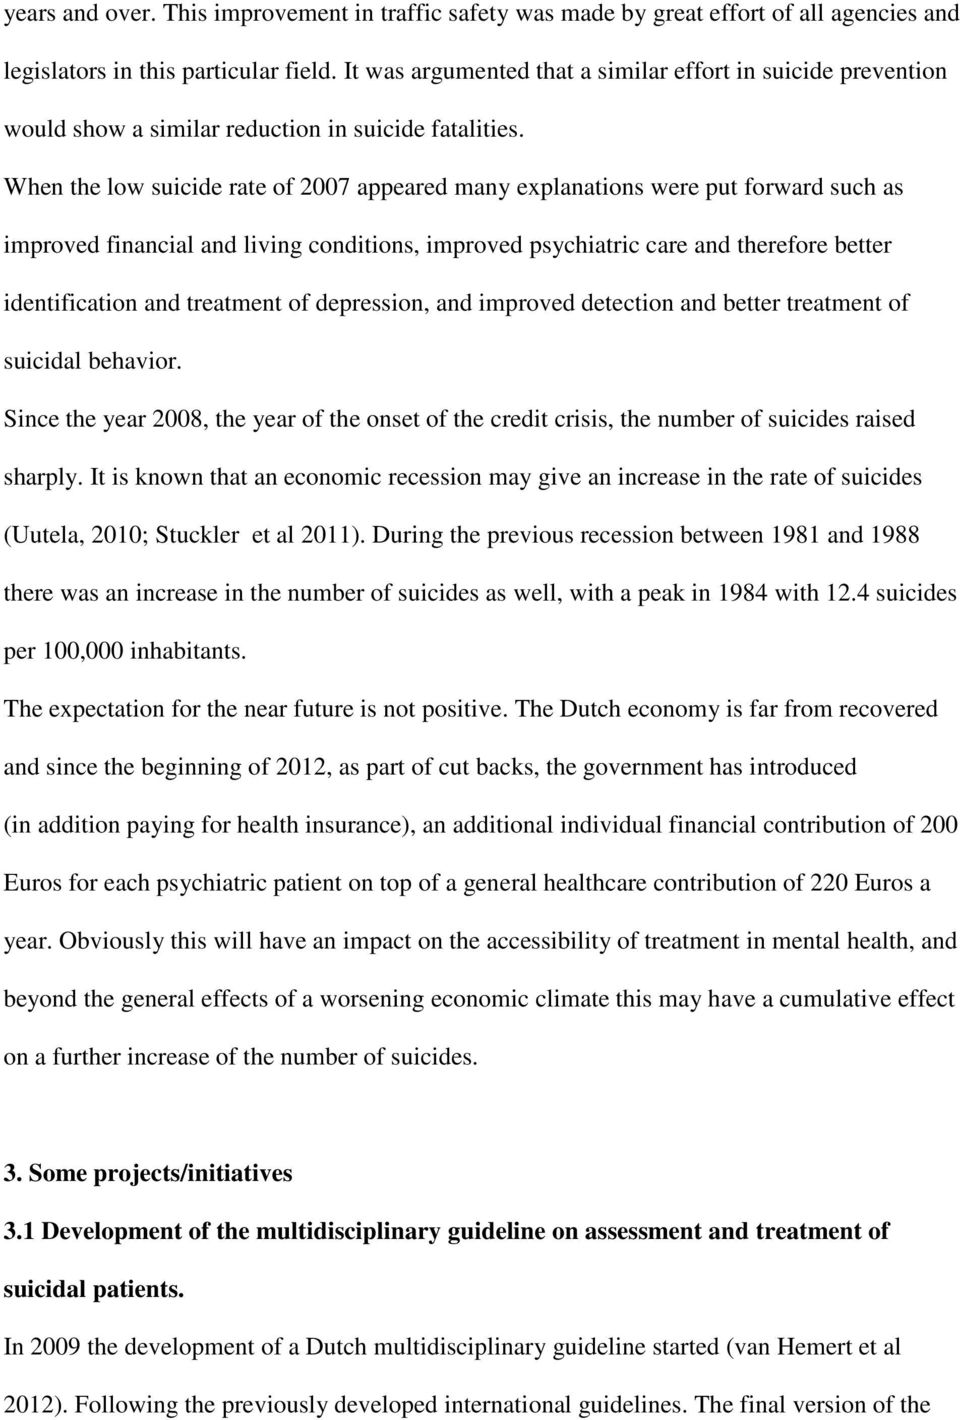 When the low suicide rate of 2007 appeared many explanations were put forward such as improved financial and living conditions, improved psychiatric care and therefore better identification and